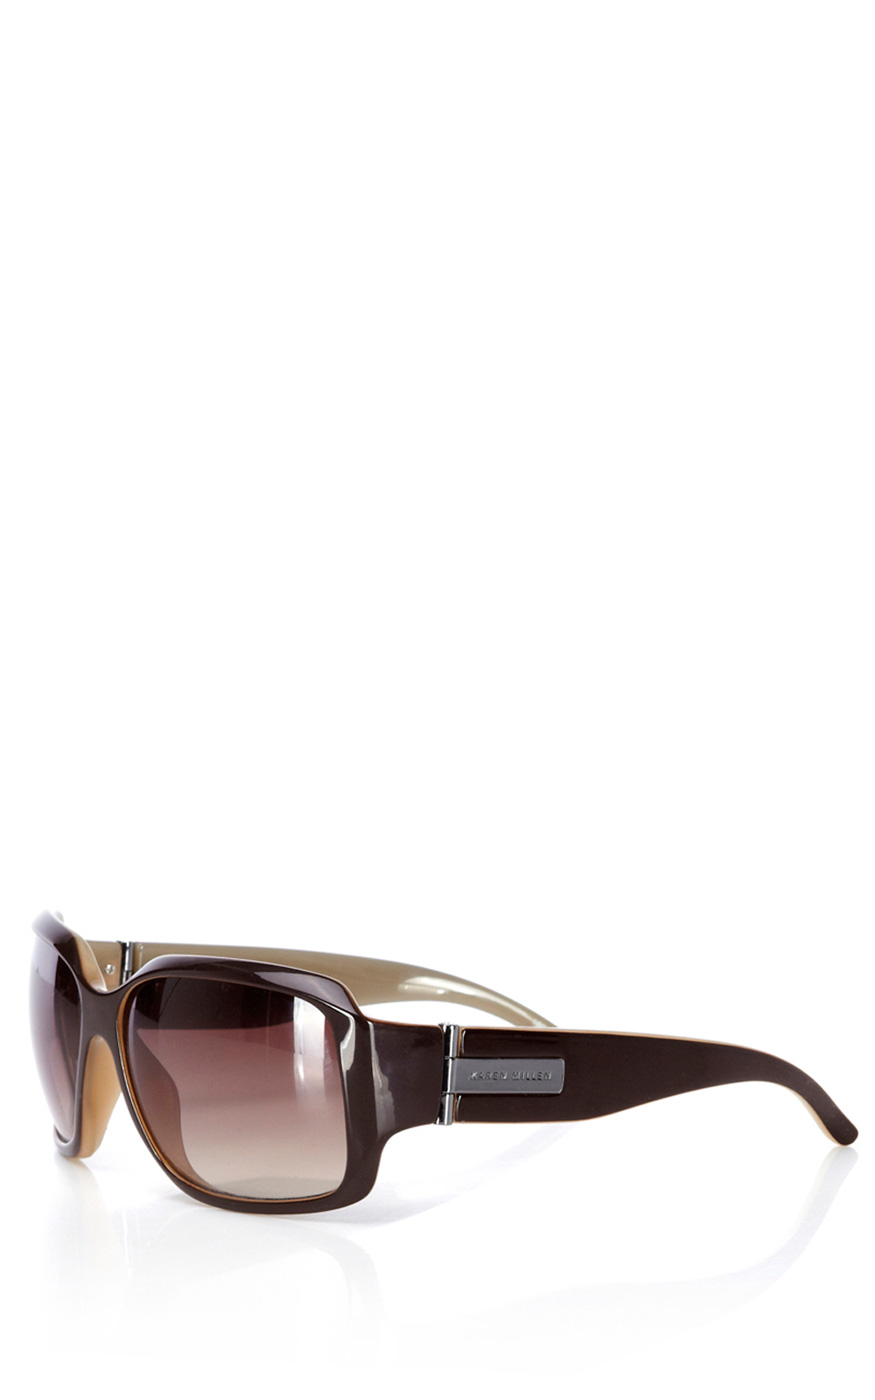 f9c5a771121 Lyst - Karen Millen Square-frame Sunglasses in Brown